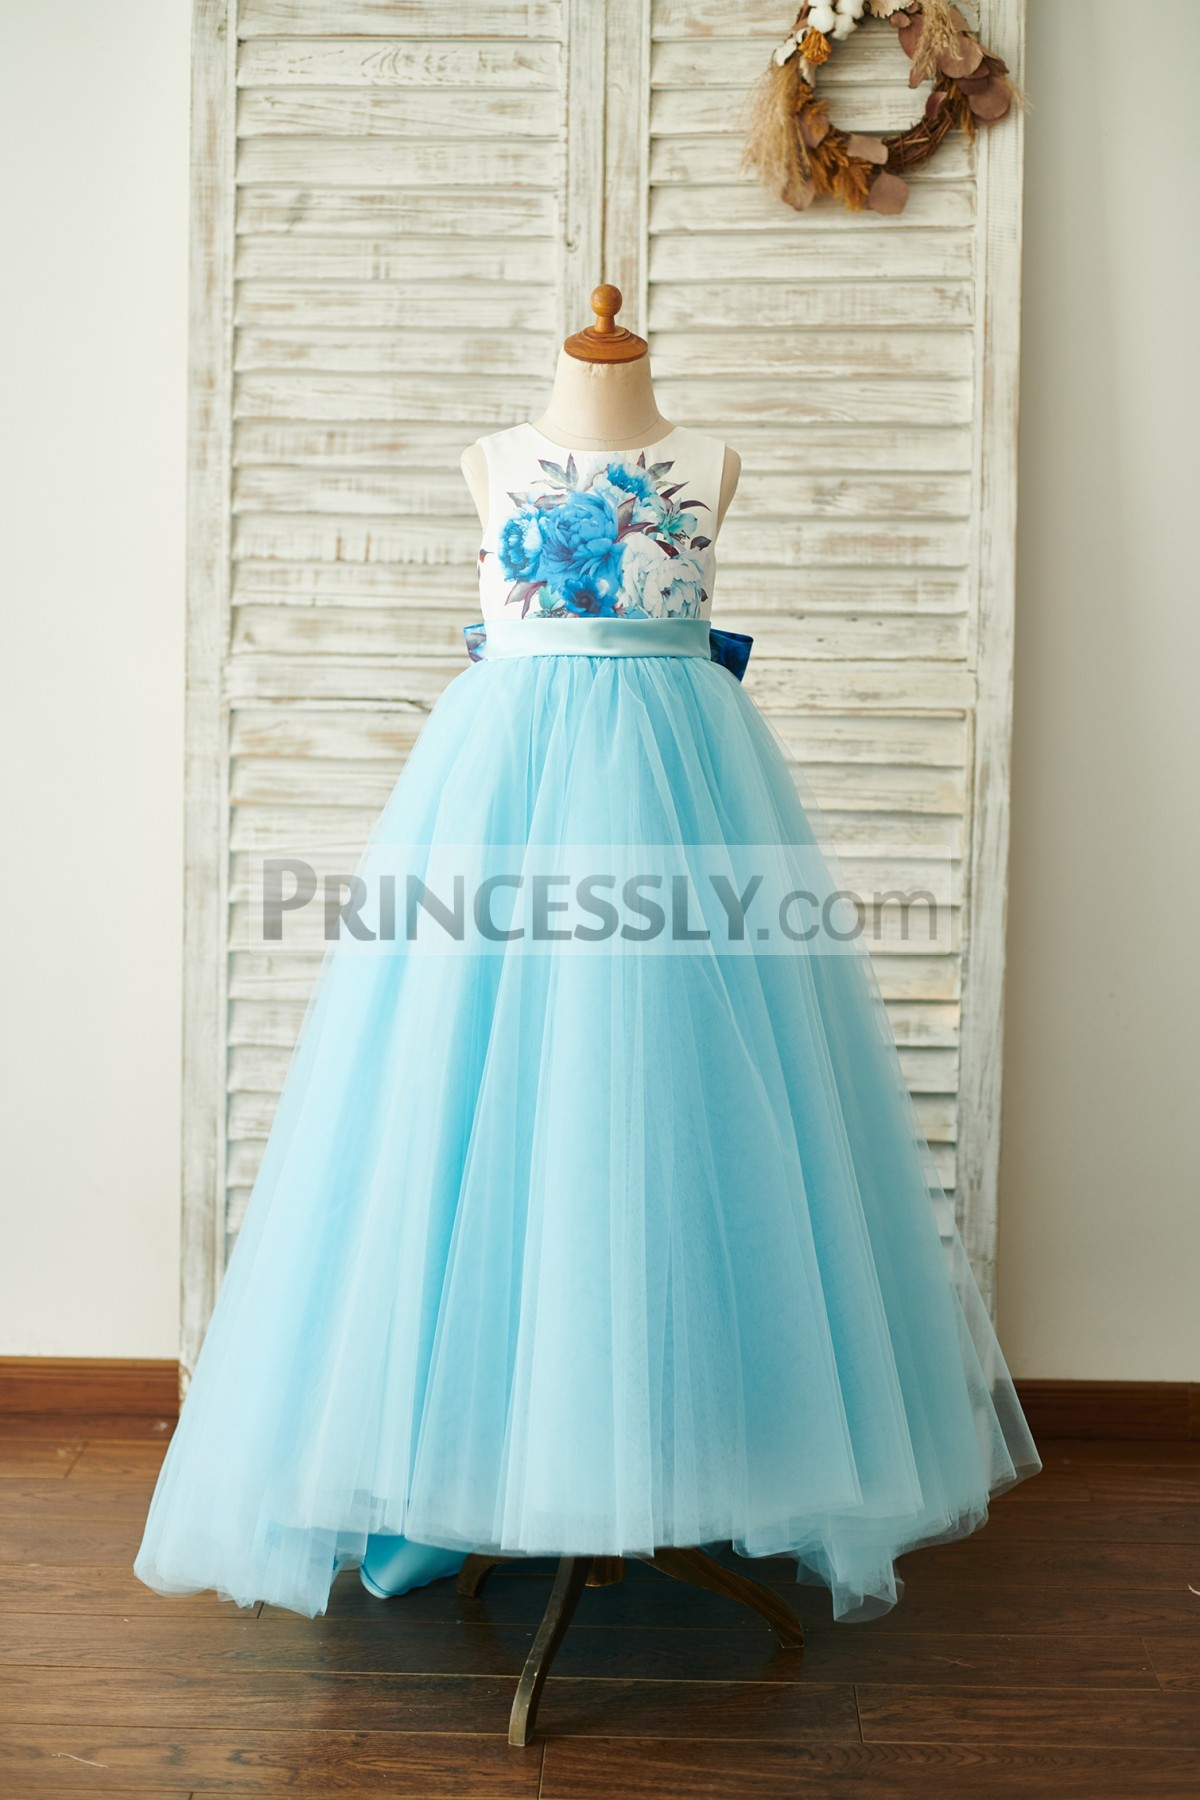 Floral Printed Satin Blue Tulle Ball Gown Dress